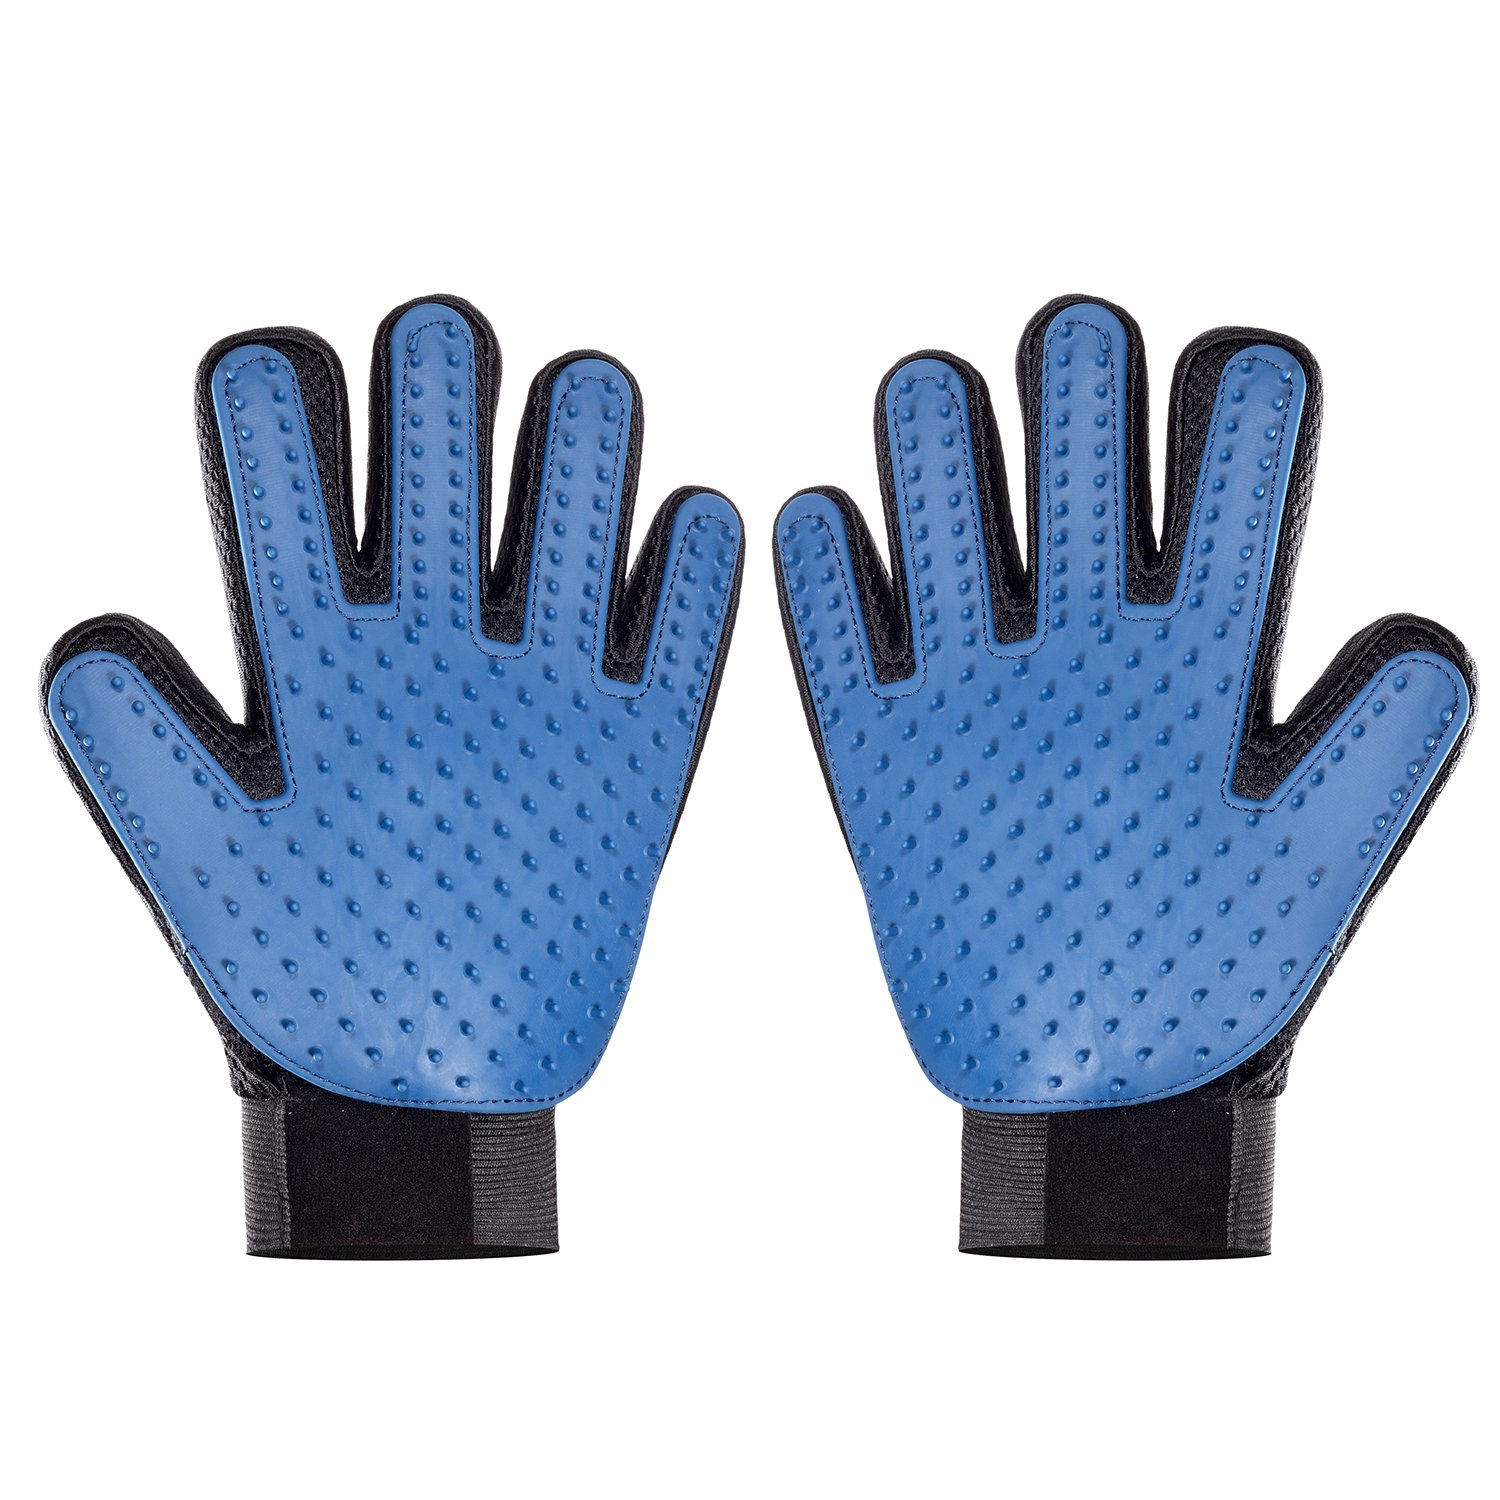 Pet Grooming Glove, Bath Brush and Massage Efficient Dog Hair Remover Mitt Cat Gentle Deshedding Brush Glove, Gentle Massaging Tool with Enhanced Five Finger Design, Perfect for Pets, Blue, 1 Pair YanLitek